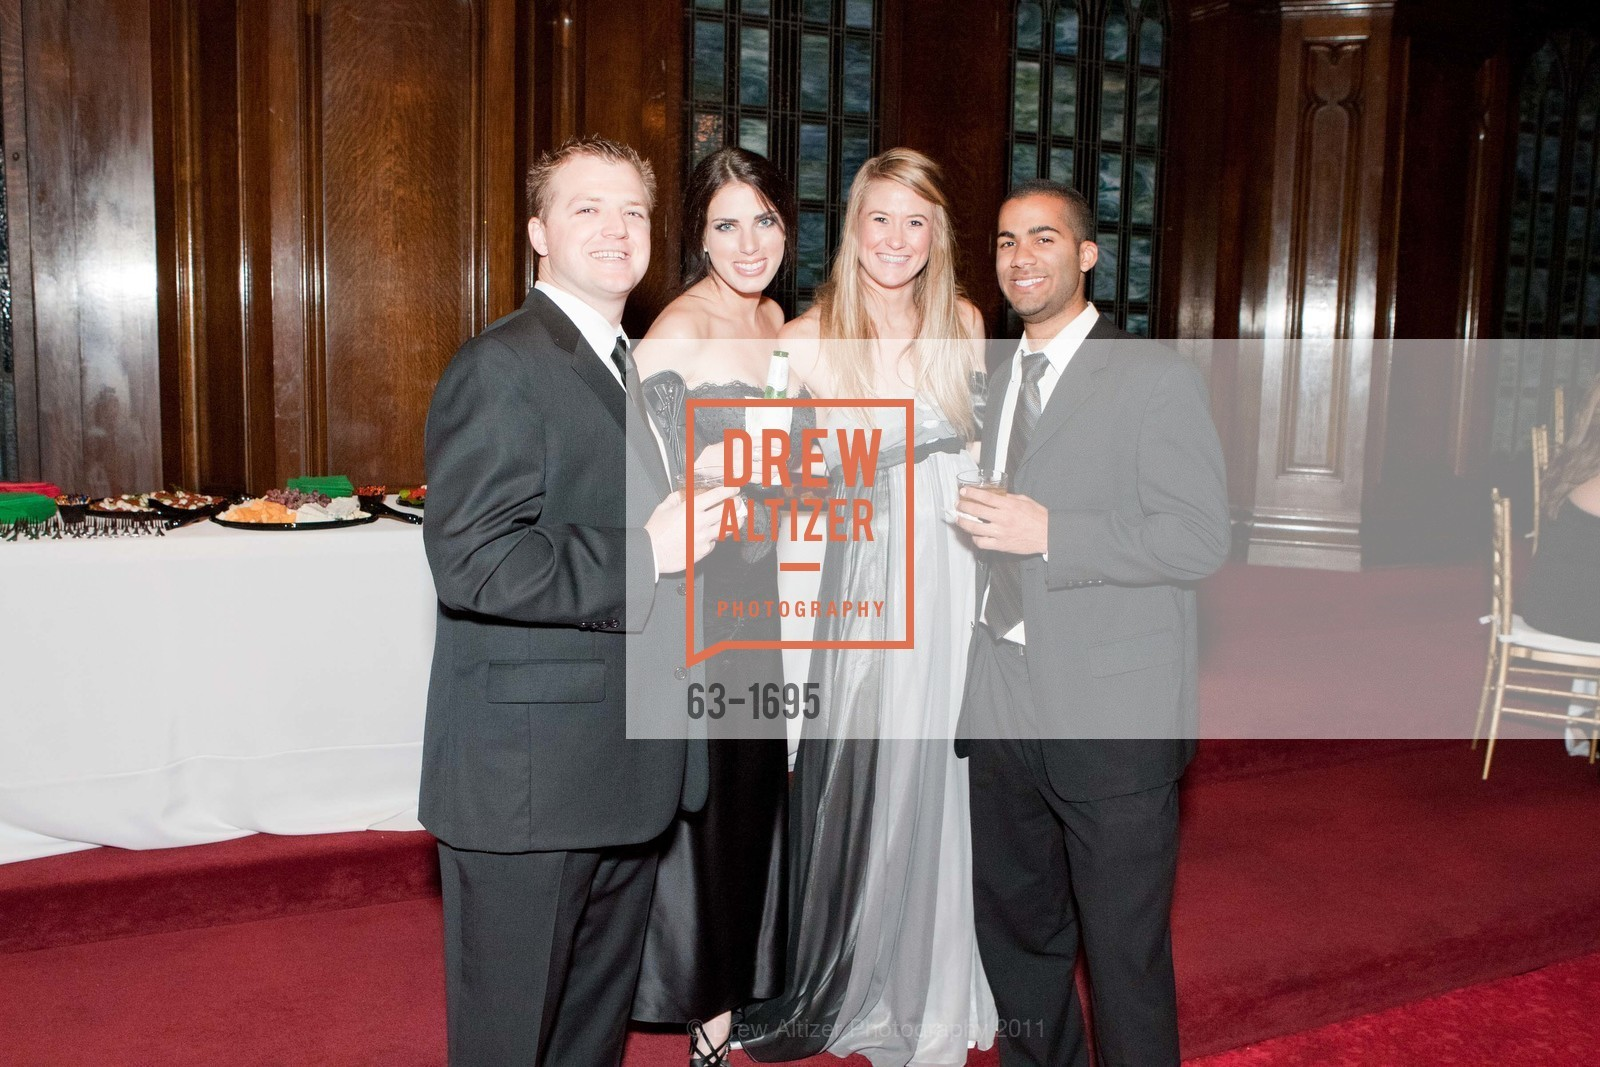 Ryan Sitov, Rachel Klarfeld, Katie Cartwright, Alex Jones, Photo #63-1695